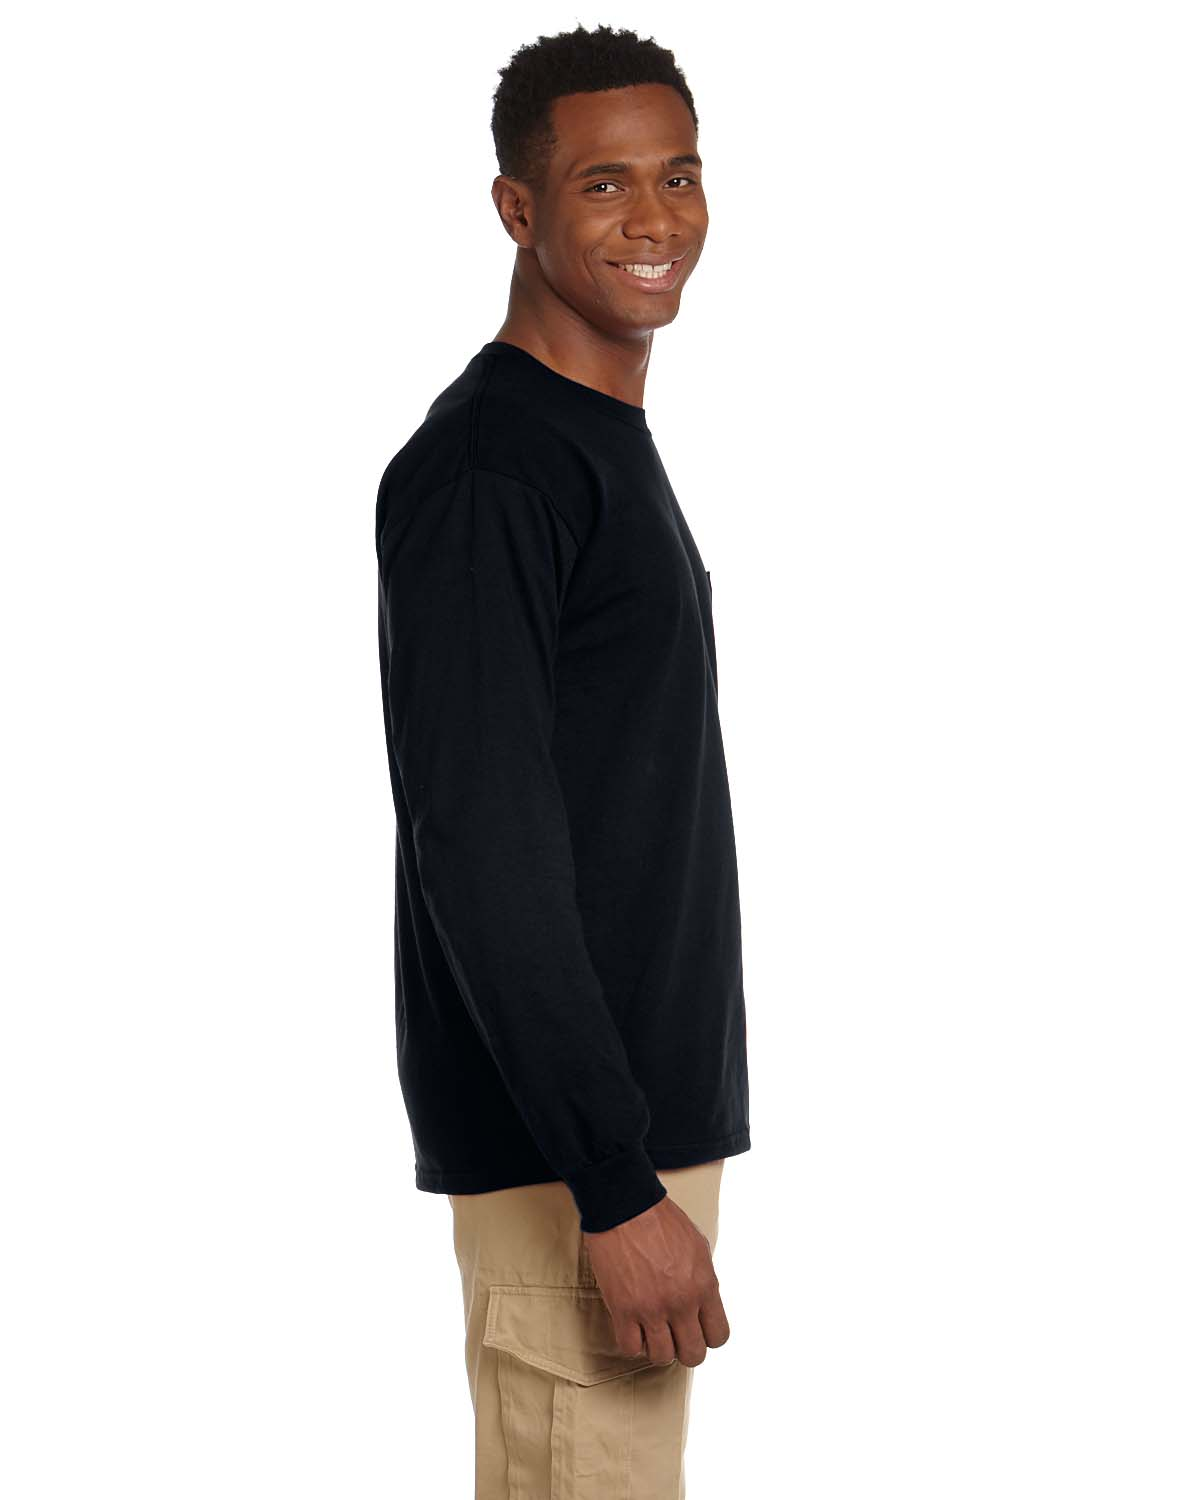 Gildan ultra cotton long sleeve t shirt with a pocket 2410 ebay - Gildan 2410 Ultra Cotton Long Sleeve T Shirt With A Pocket Xl Safety Green